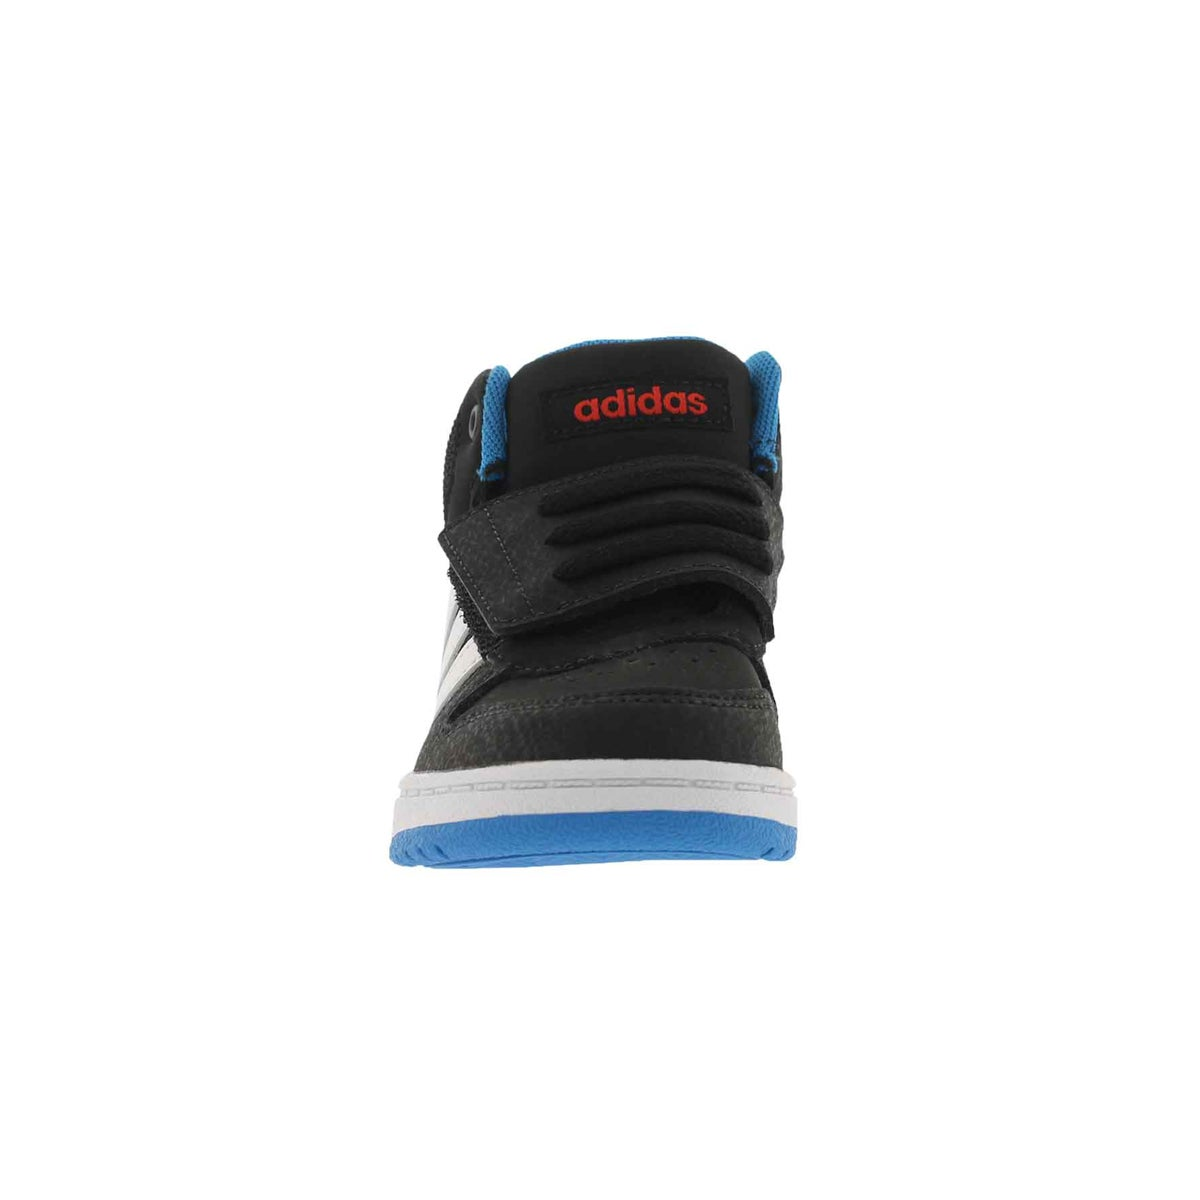 Inf-b VS Hoops Mid 2.0 blk/blu high snkr